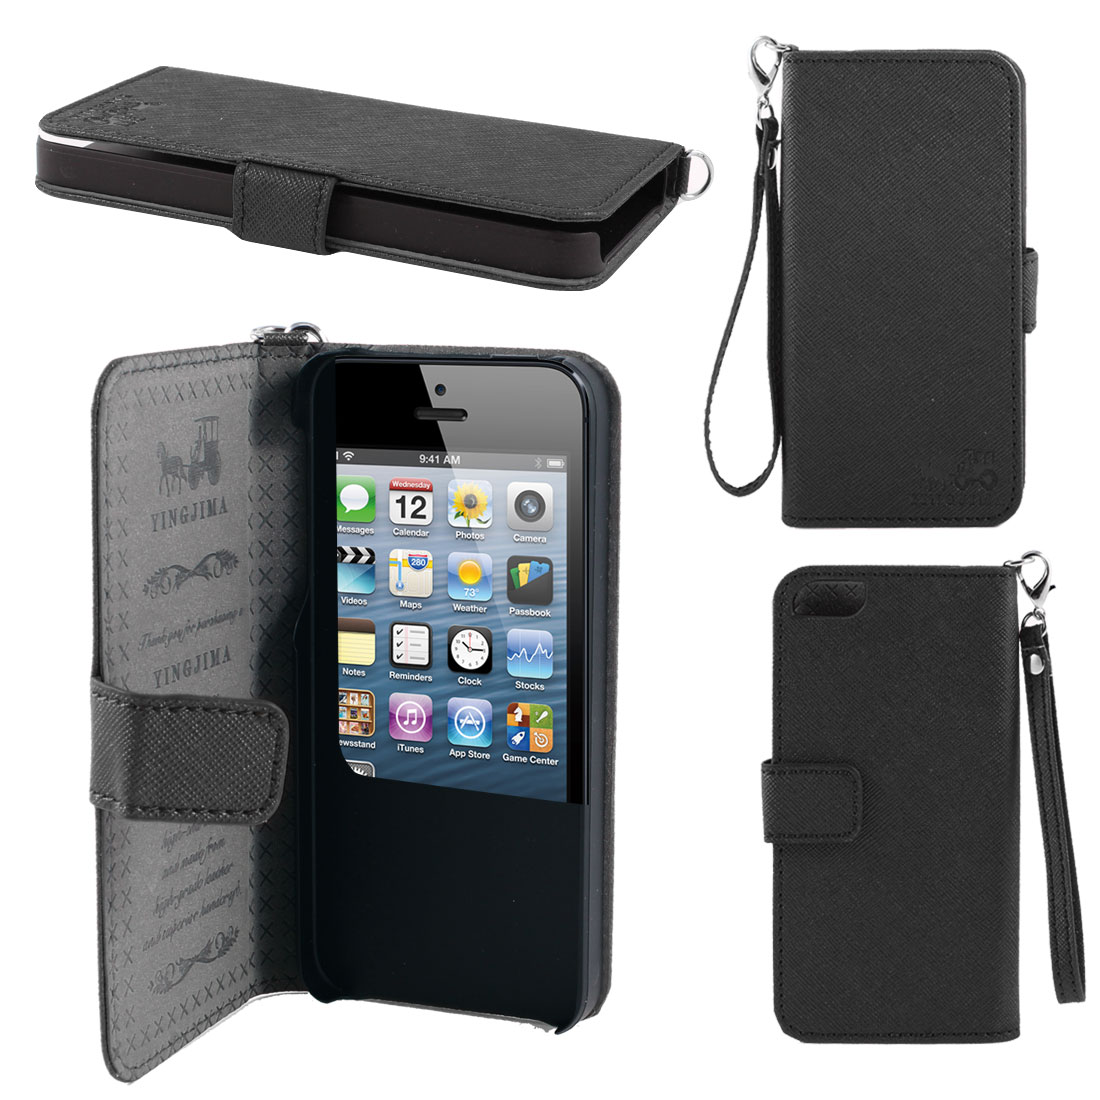 Black Faux Leather Magnetic Flip Case Cover Pouch Holder for iPhone 5 5G 5th